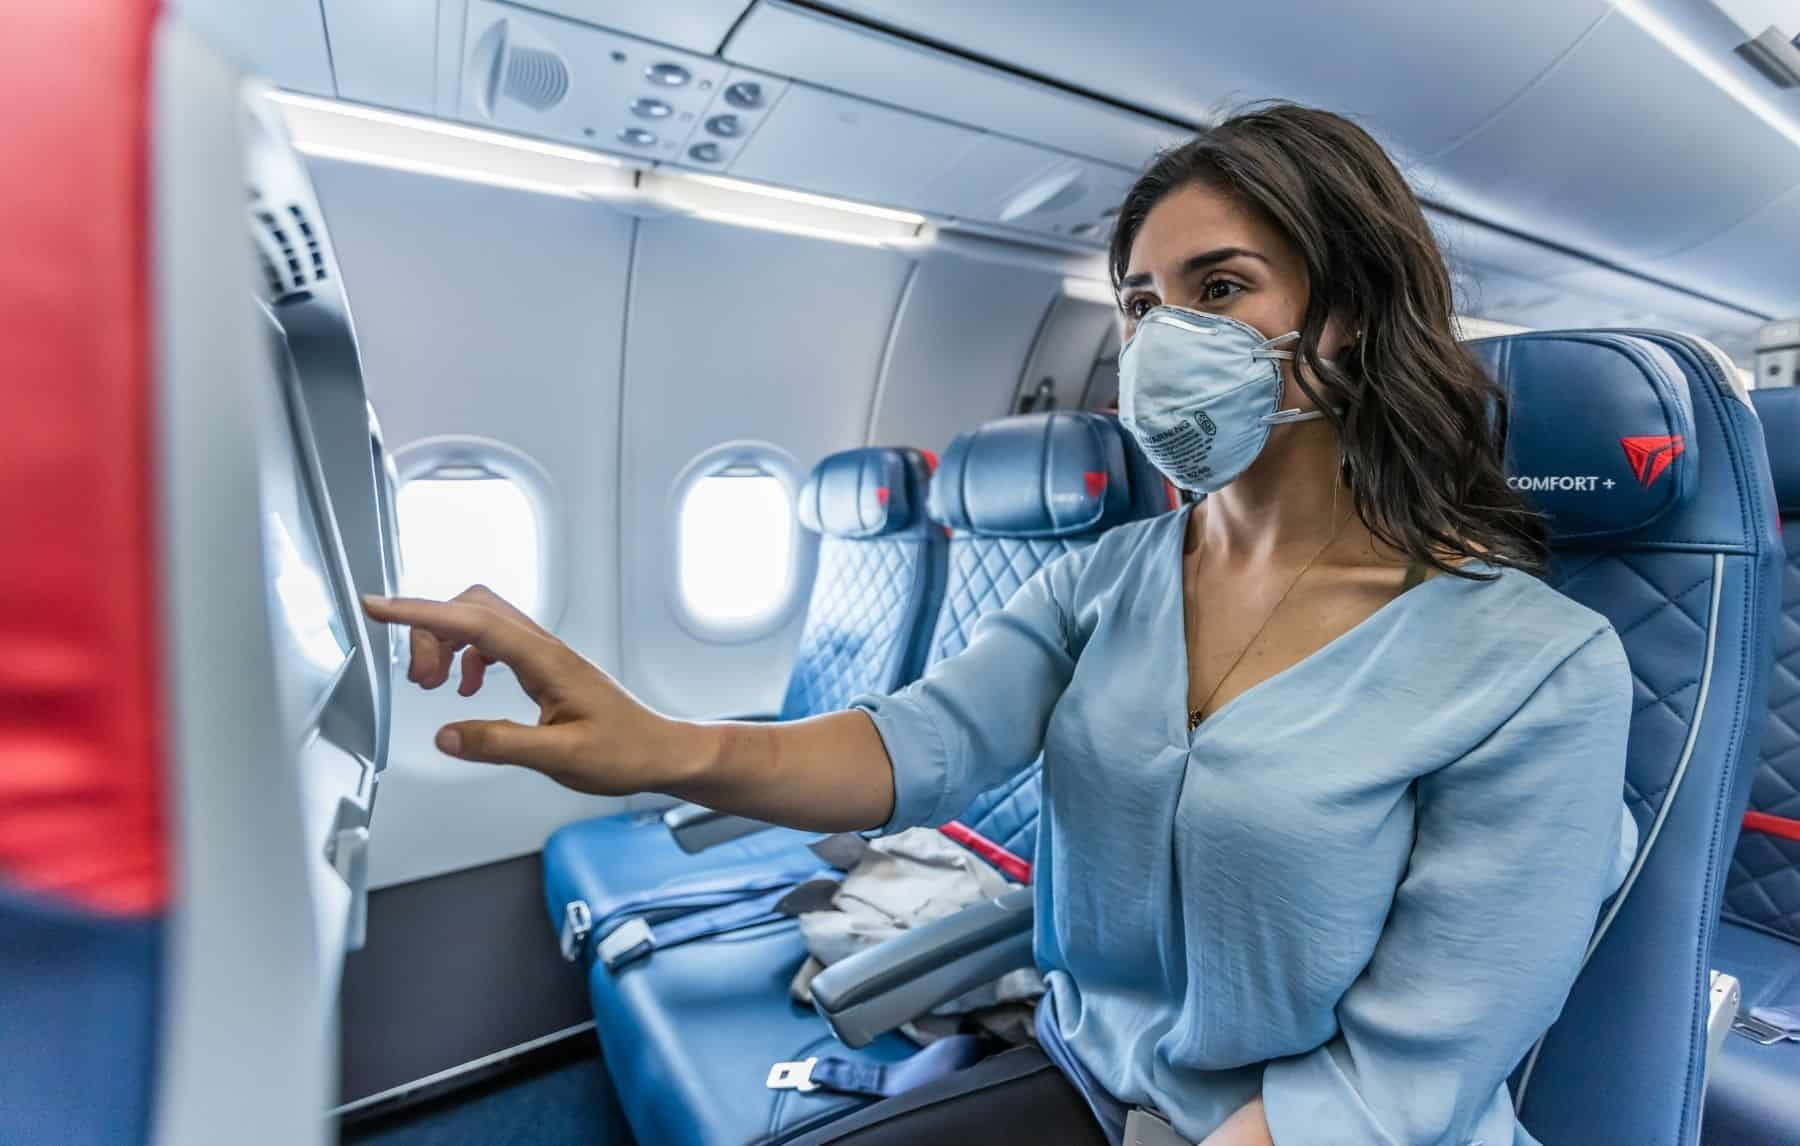 The air on Delta aircraft is completely refreshed every 2 to 6 minutes with fresh outside air or air that has been recirculated through industrial-grade HEPA filters.